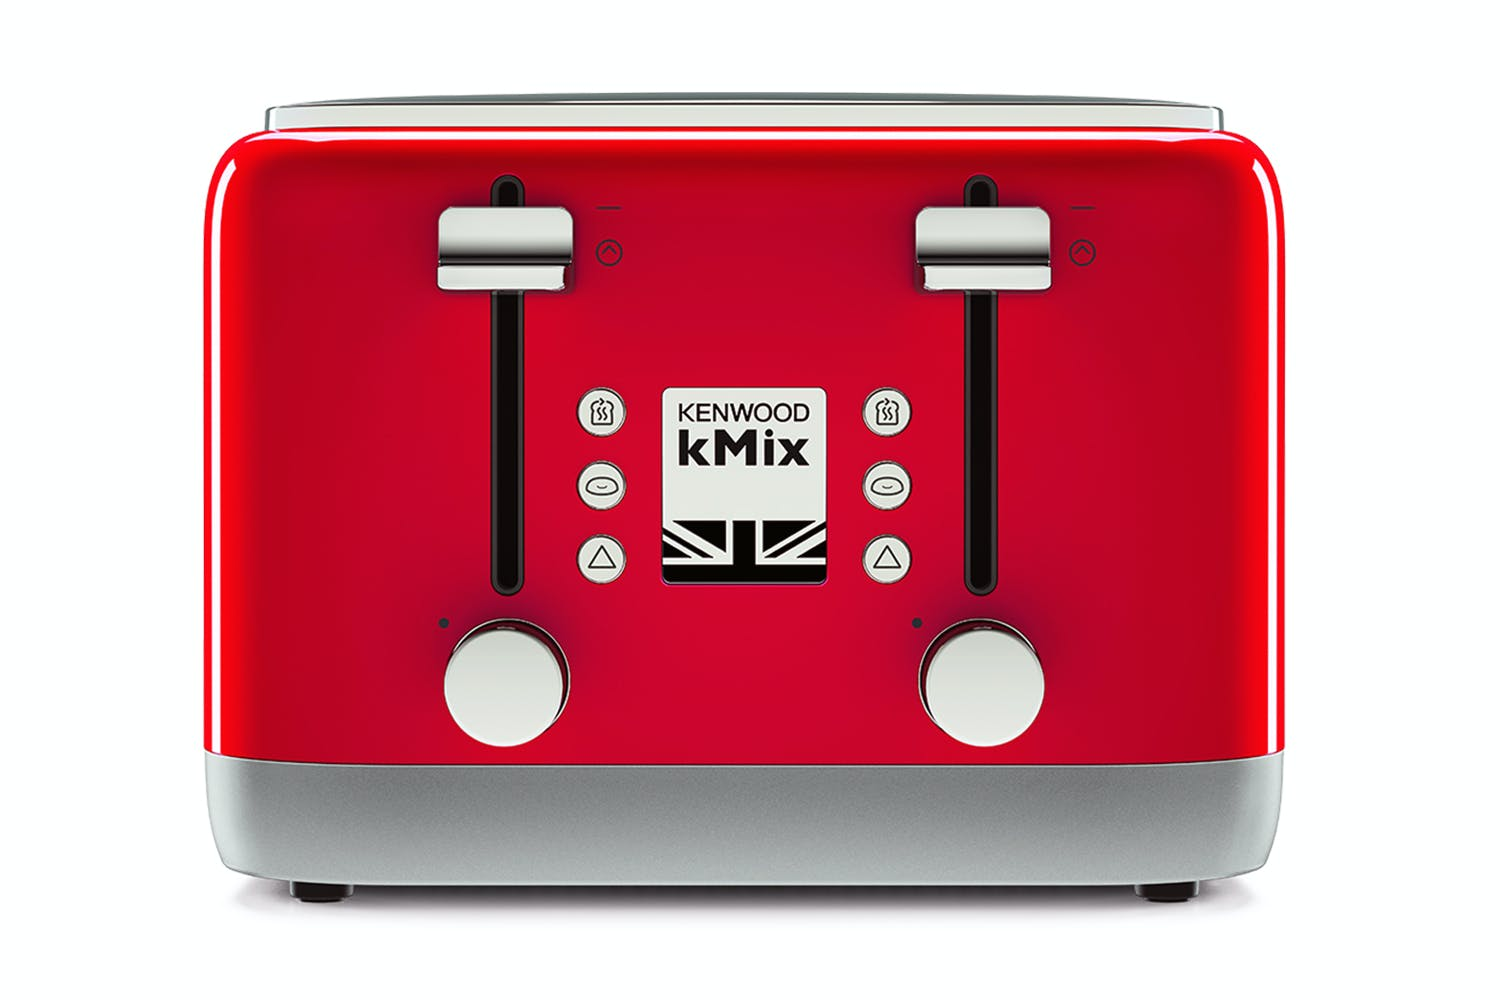 kenwood kmix 4 slice toaster red harvey norman new zealand. Black Bedroom Furniture Sets. Home Design Ideas